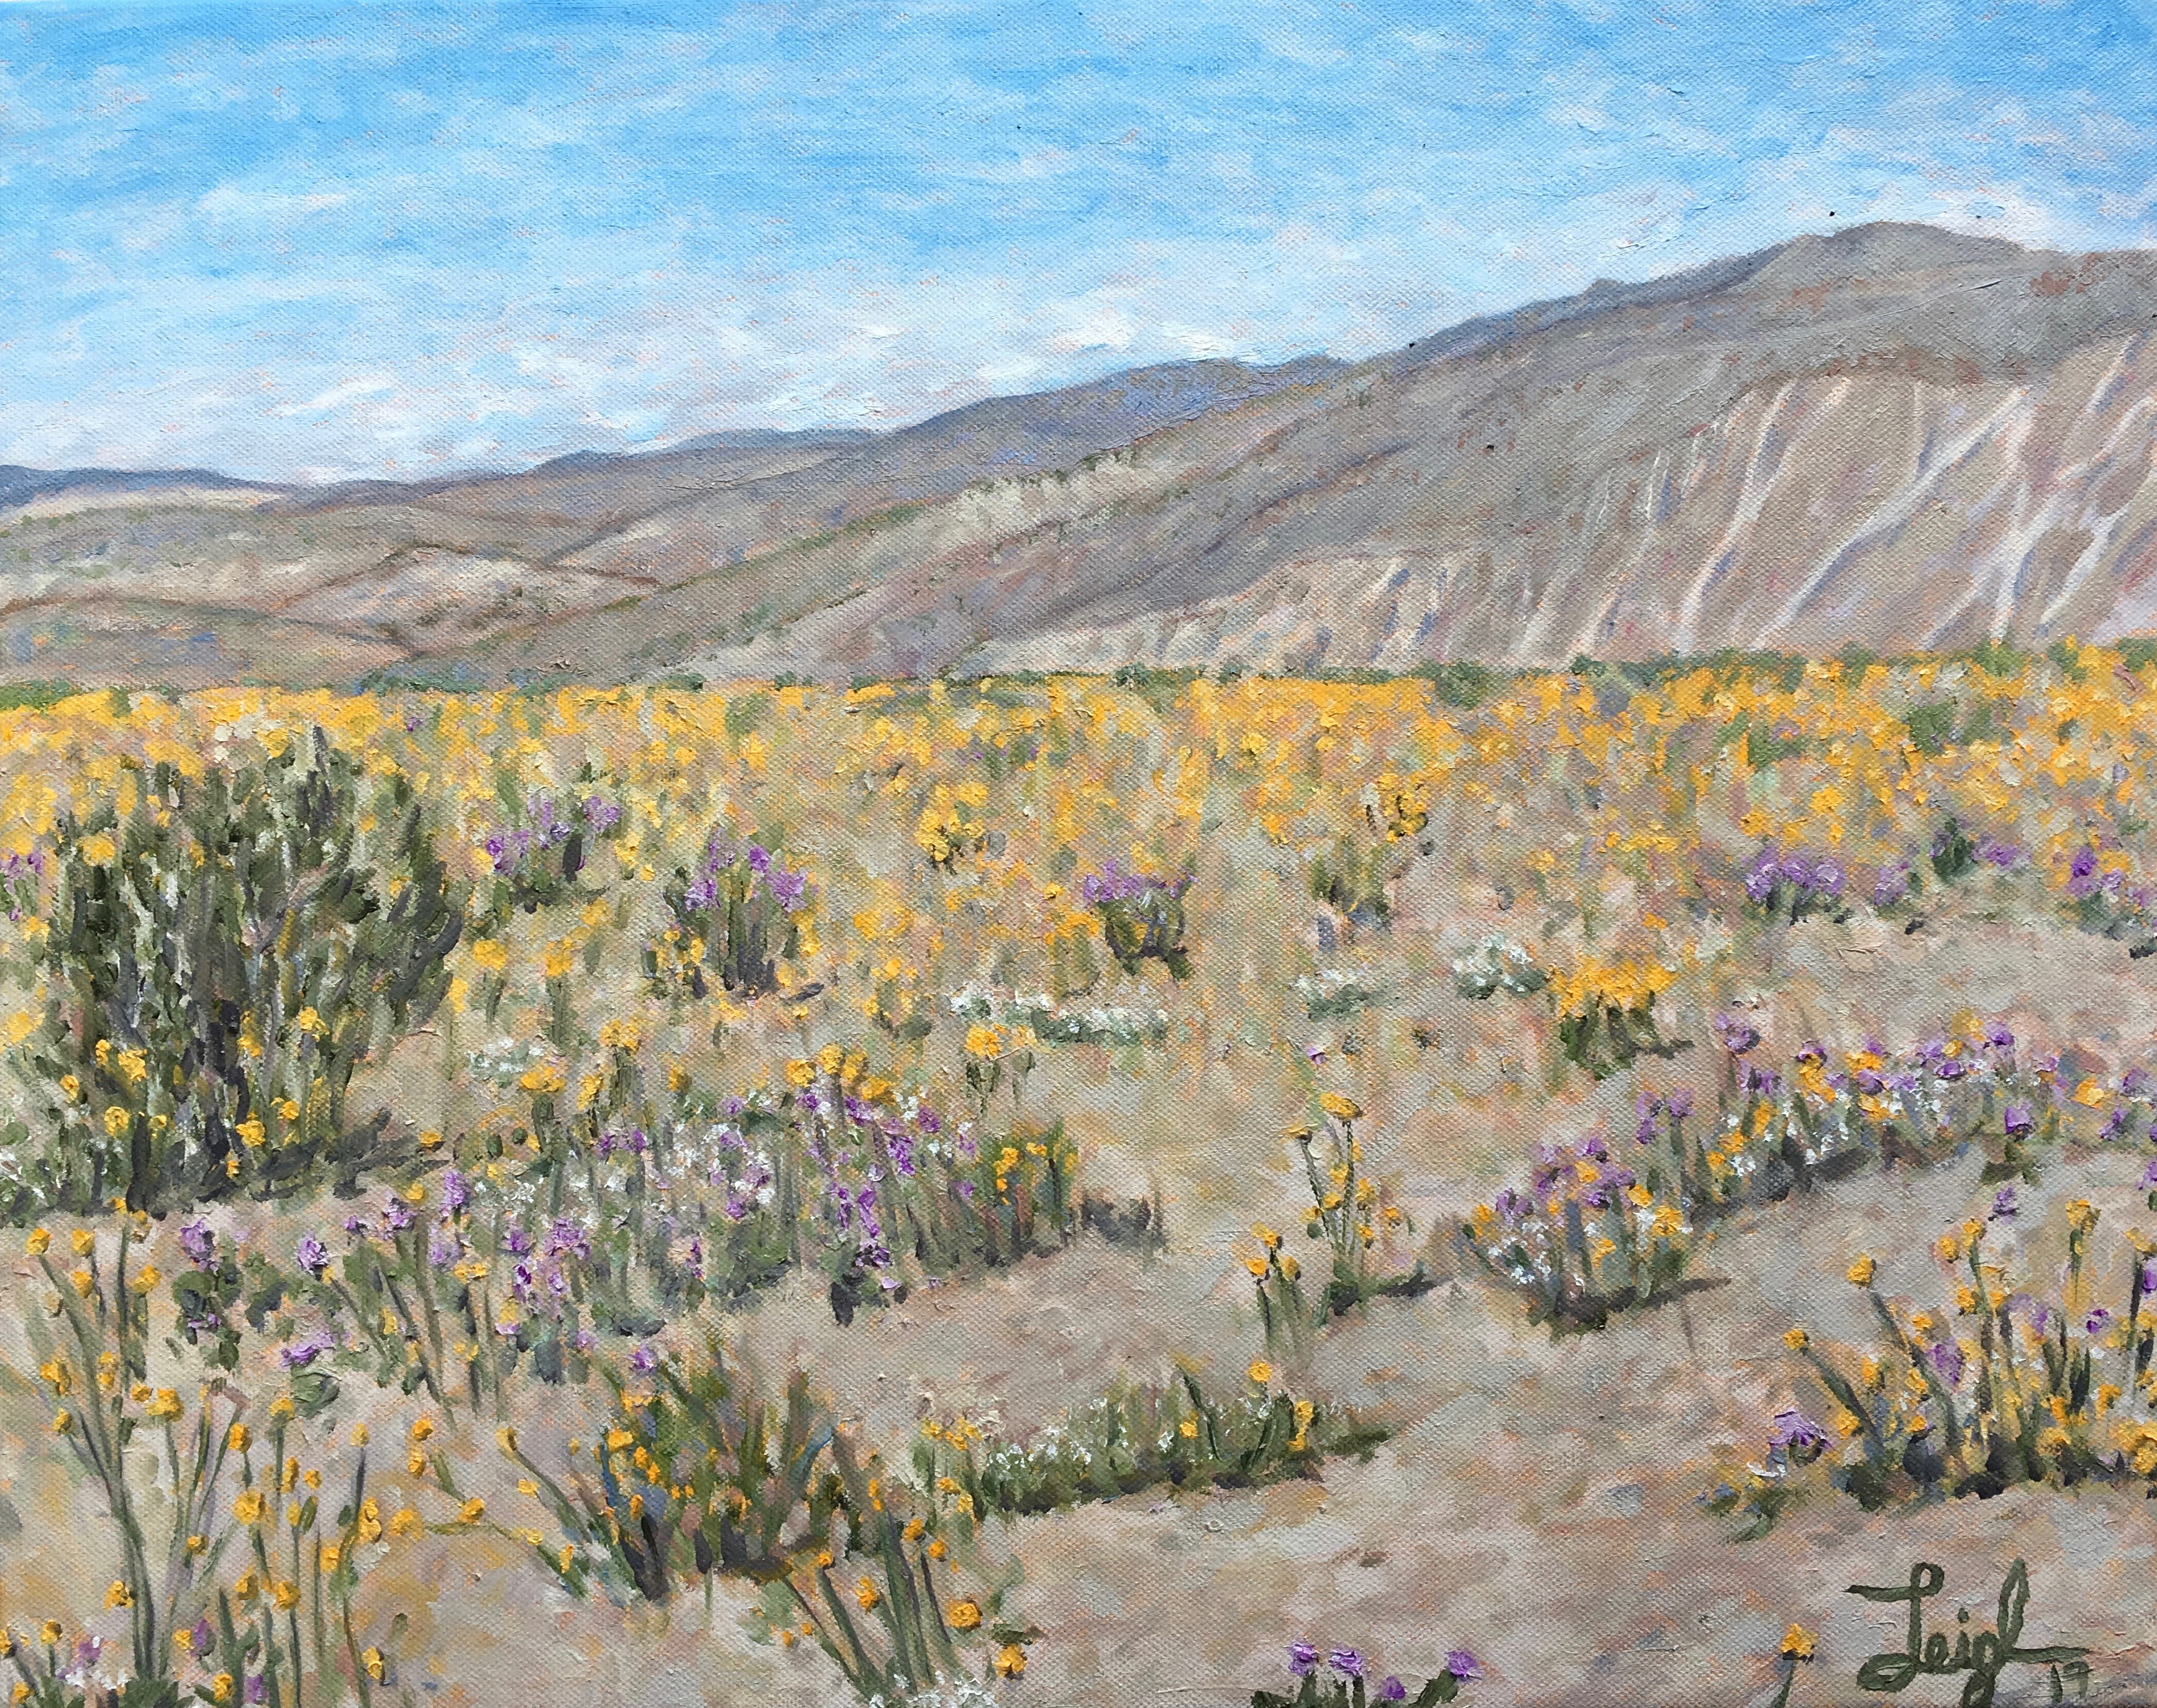 Anza Borrego Super Bloom #1  ~  Annie Moyer, Brooklyn, NY 2019  •  20 x 16